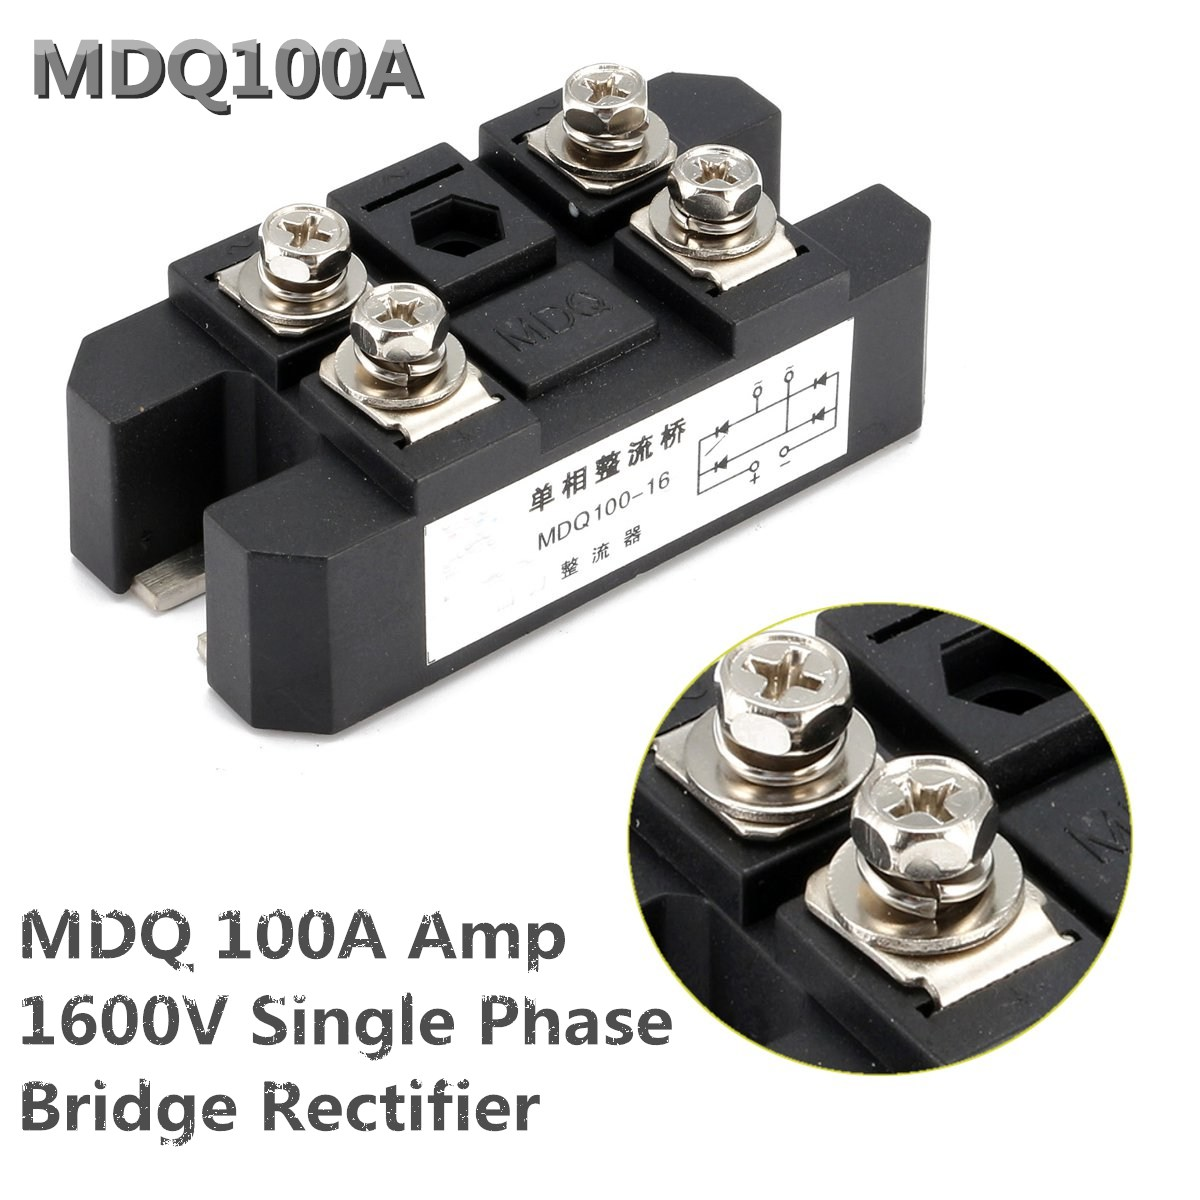 1PC MDQ 100A Amp 1600V Volt Silicon Single Phase Diode Metal Case Bridge Rectifier Module Electronic Components & Supplies